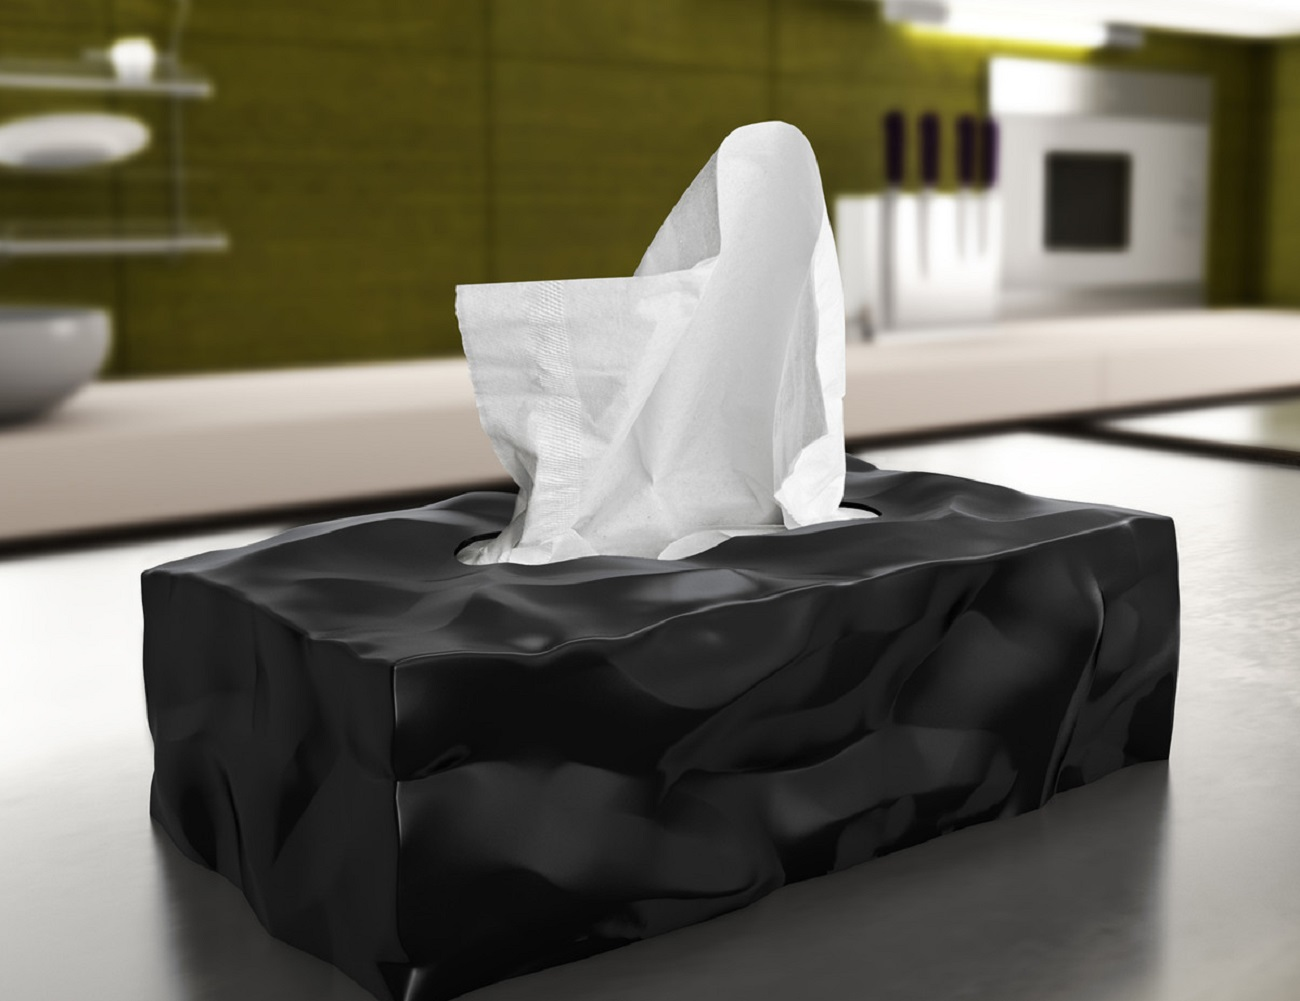 Wipy II Tissue Box by Essey